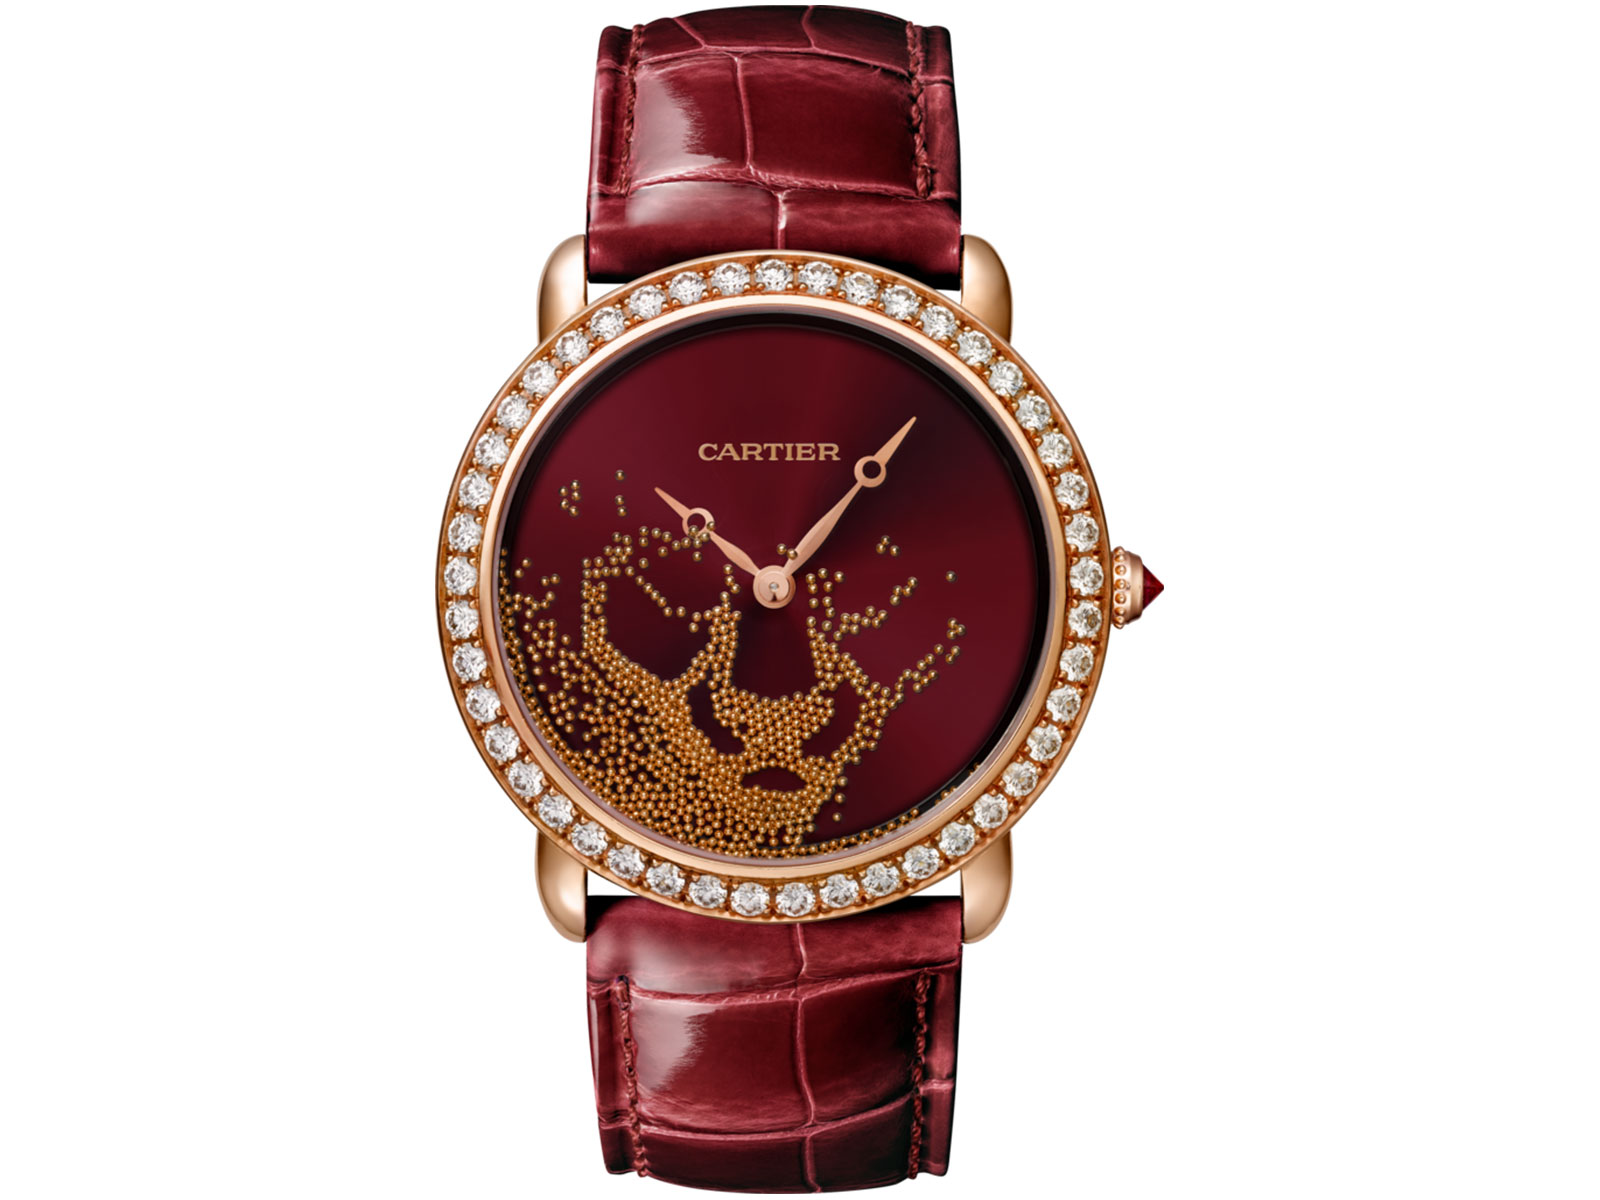 HP-01260-Cartier-Panthere-Collection-Sihh2018-Red-2.jpg